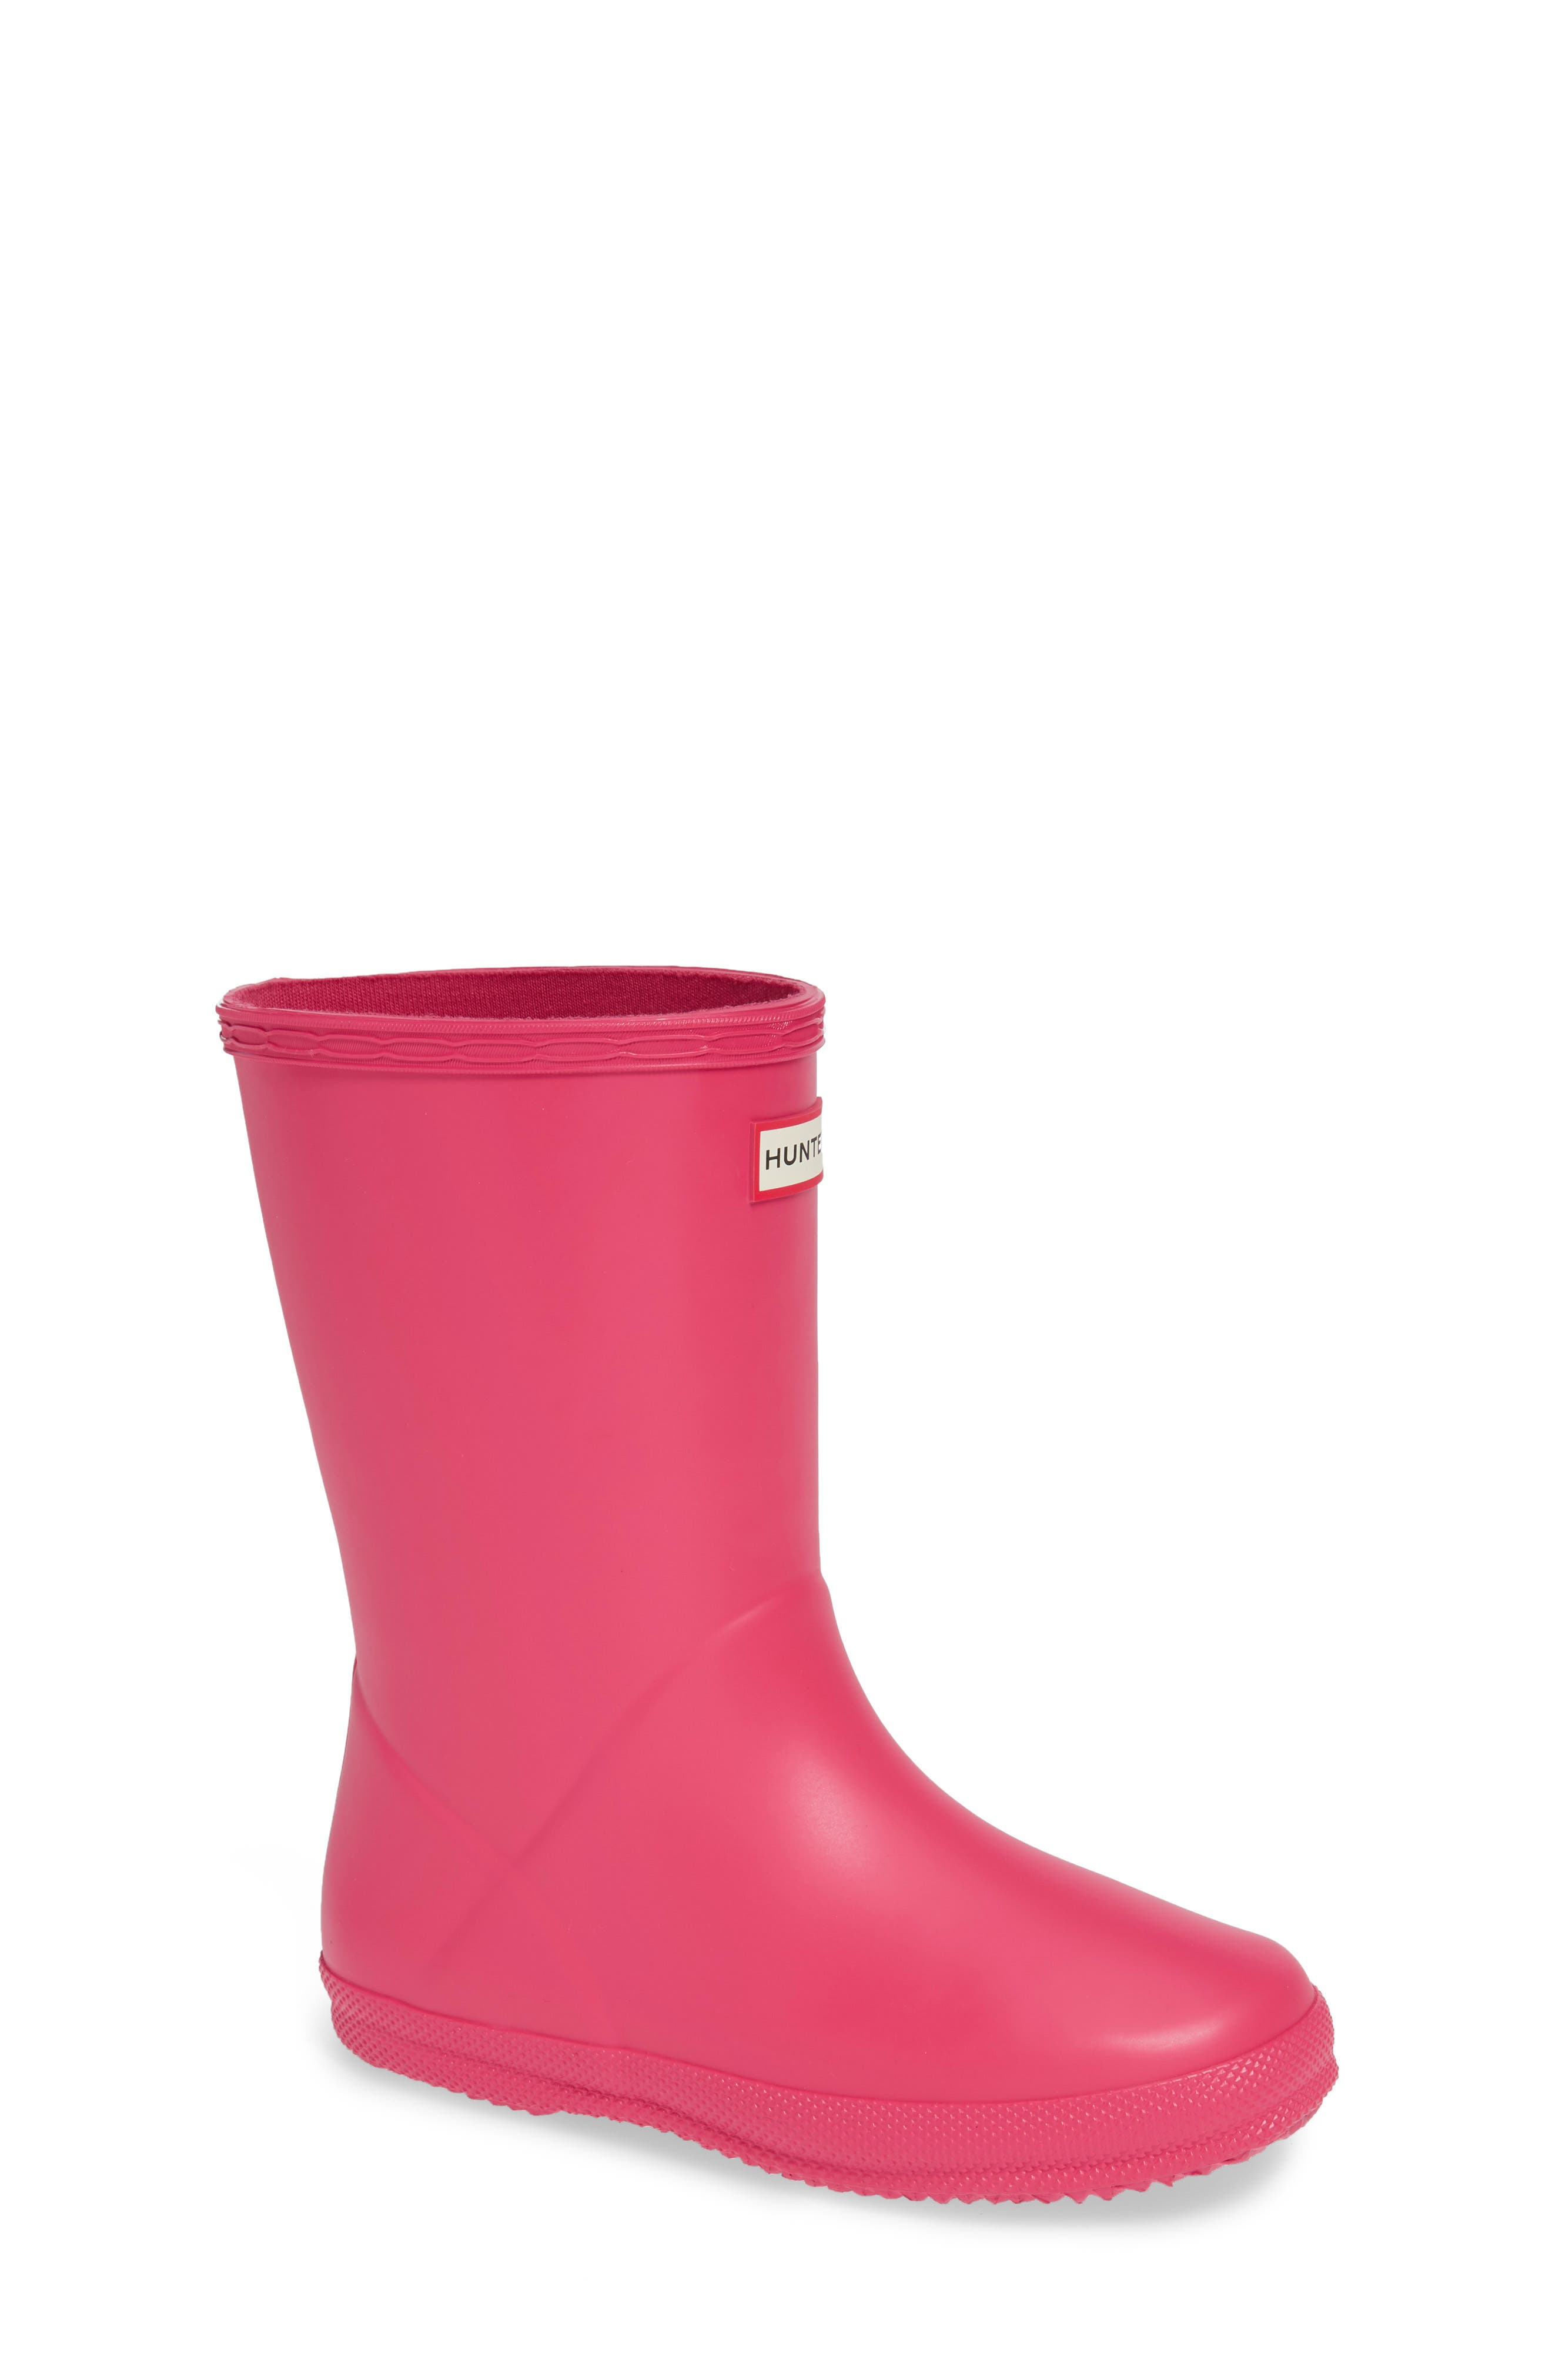 'First Classic' Rain Boot,                         Main,                         color, Bright Pink